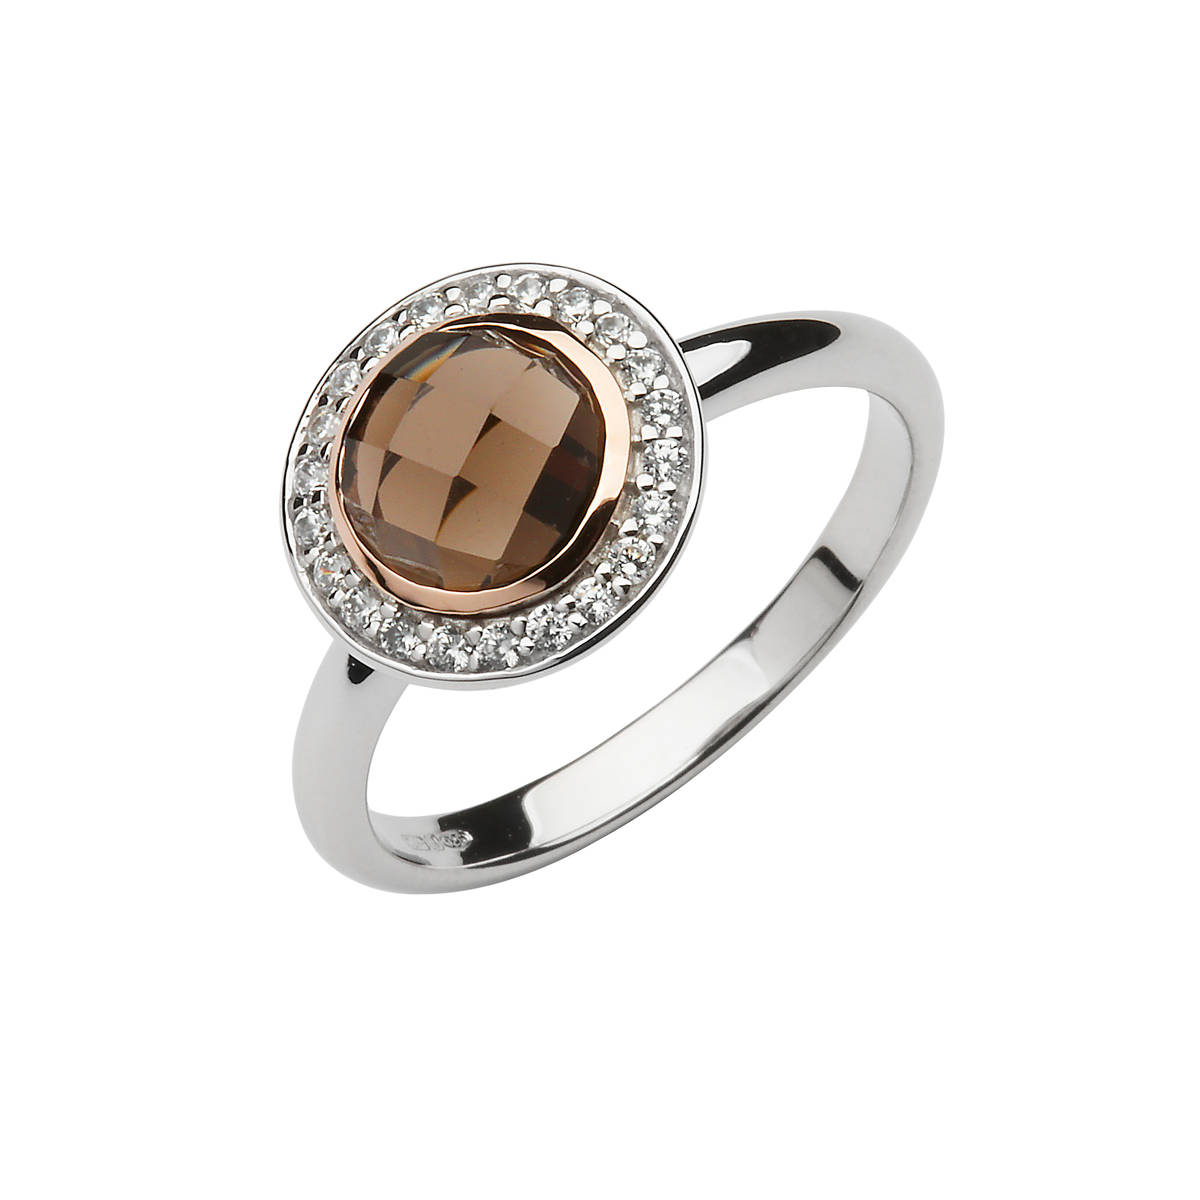 sterling silver and rose gold cz set halo with smokey quartz centre stone and made with rare Irish gold.